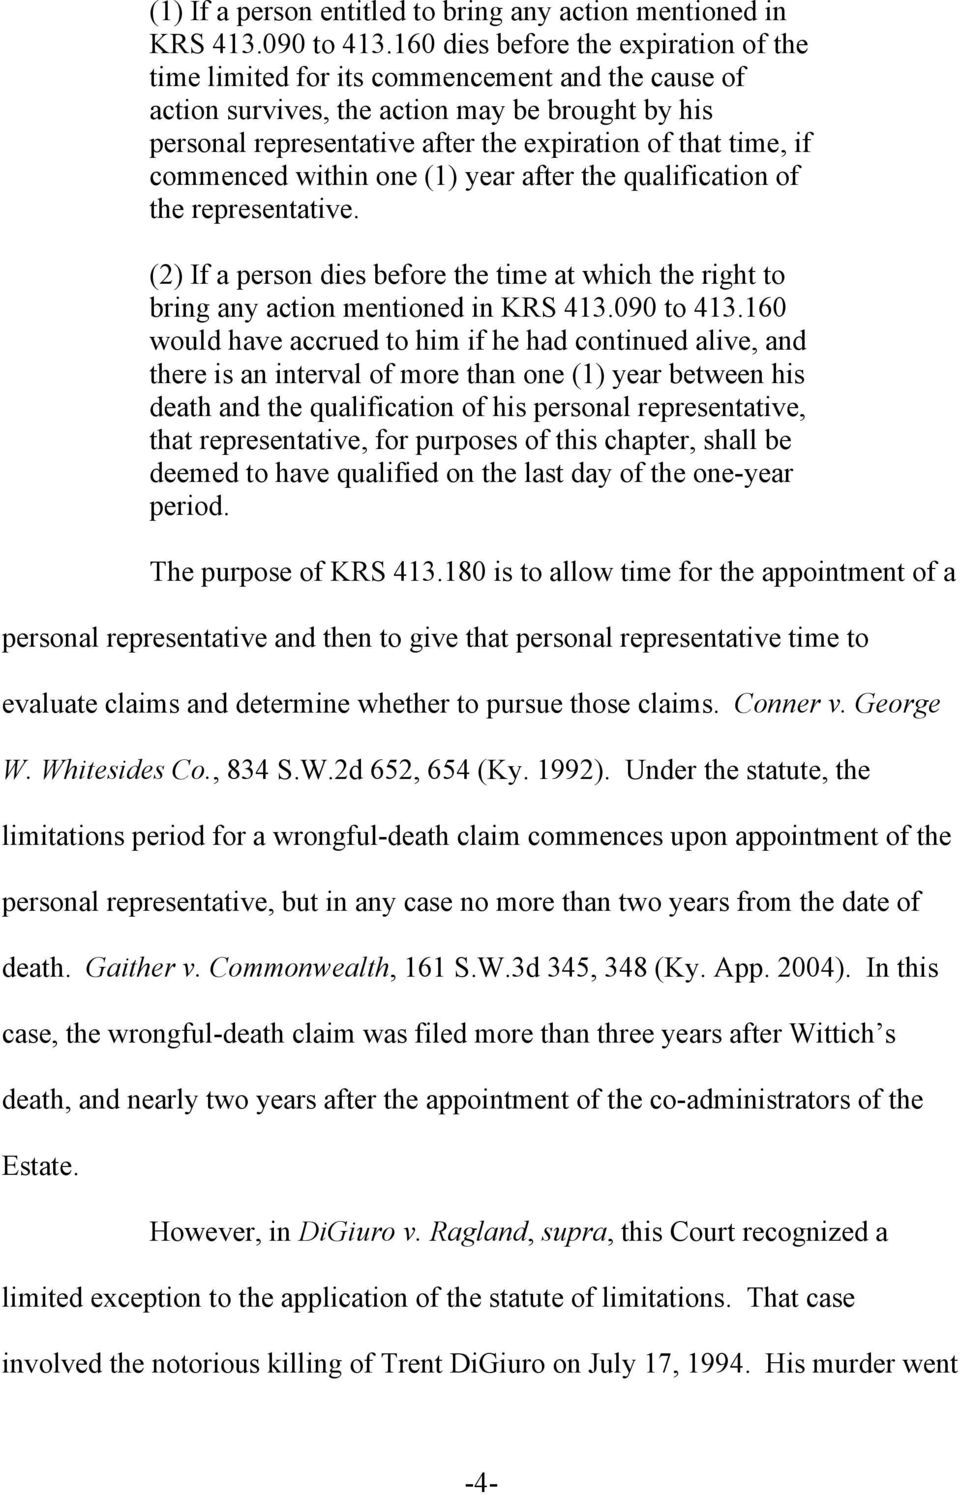 if commenced within one (1) year after the qualification of the representative. (2) If a person dies before the time at which the right to bring any action mentioned in KRS 413.090 to 413.